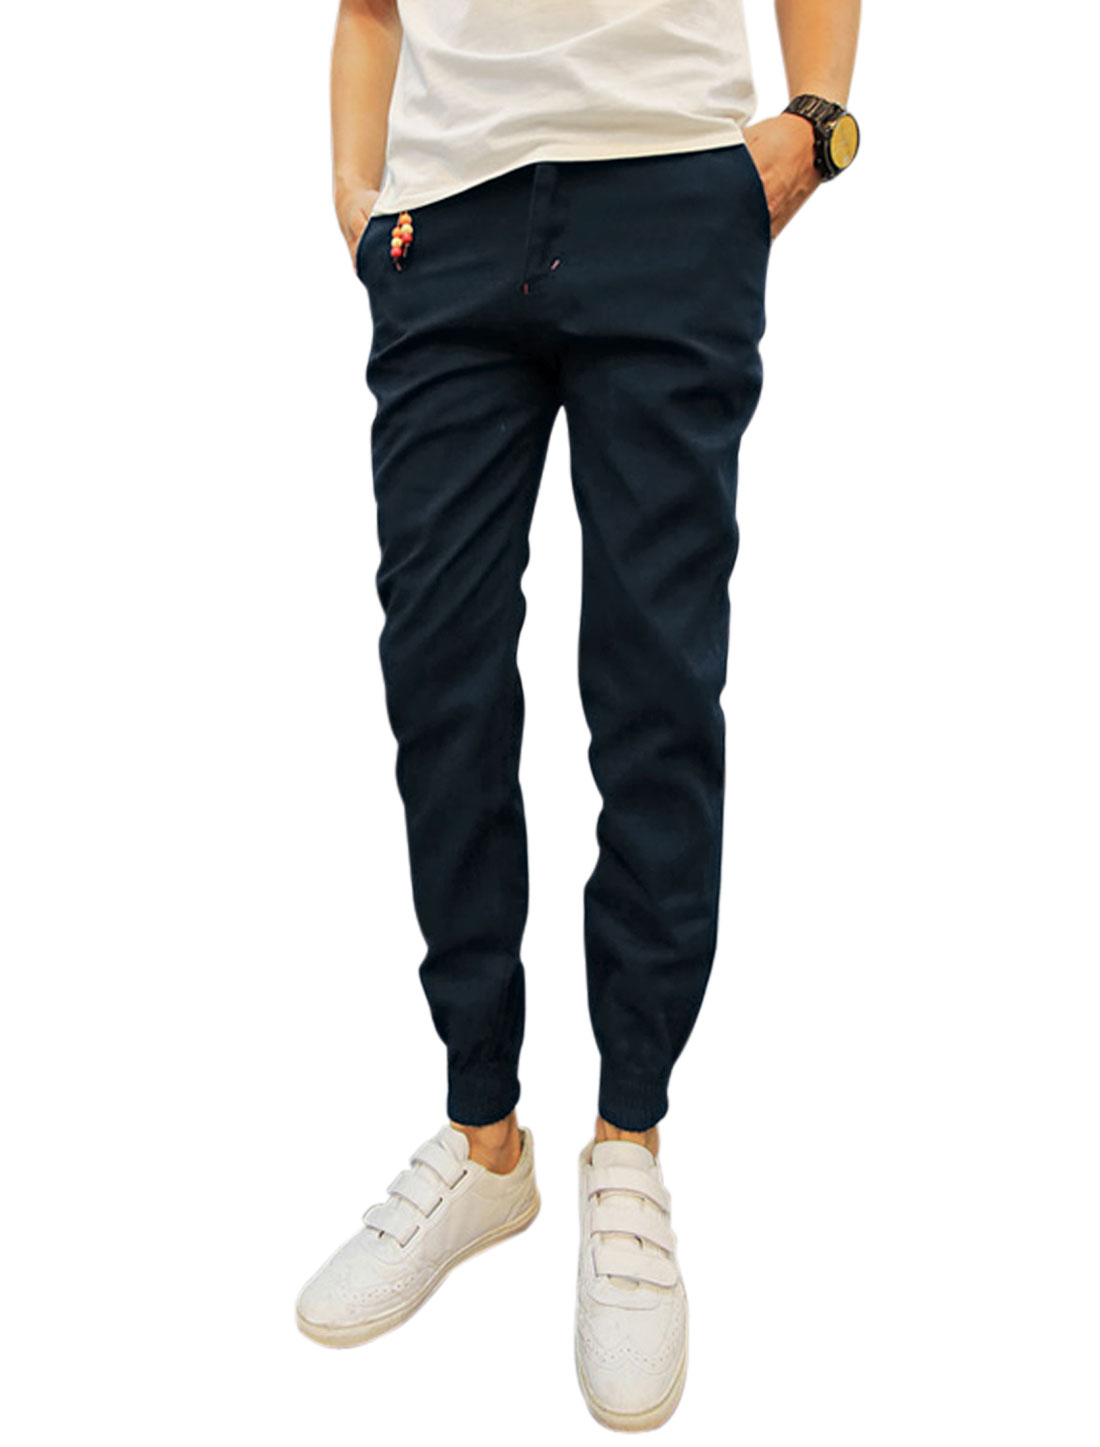 Men Mid Rise Zip Fly Pockets Elastic Cuffs Trousers Navy Blue W30